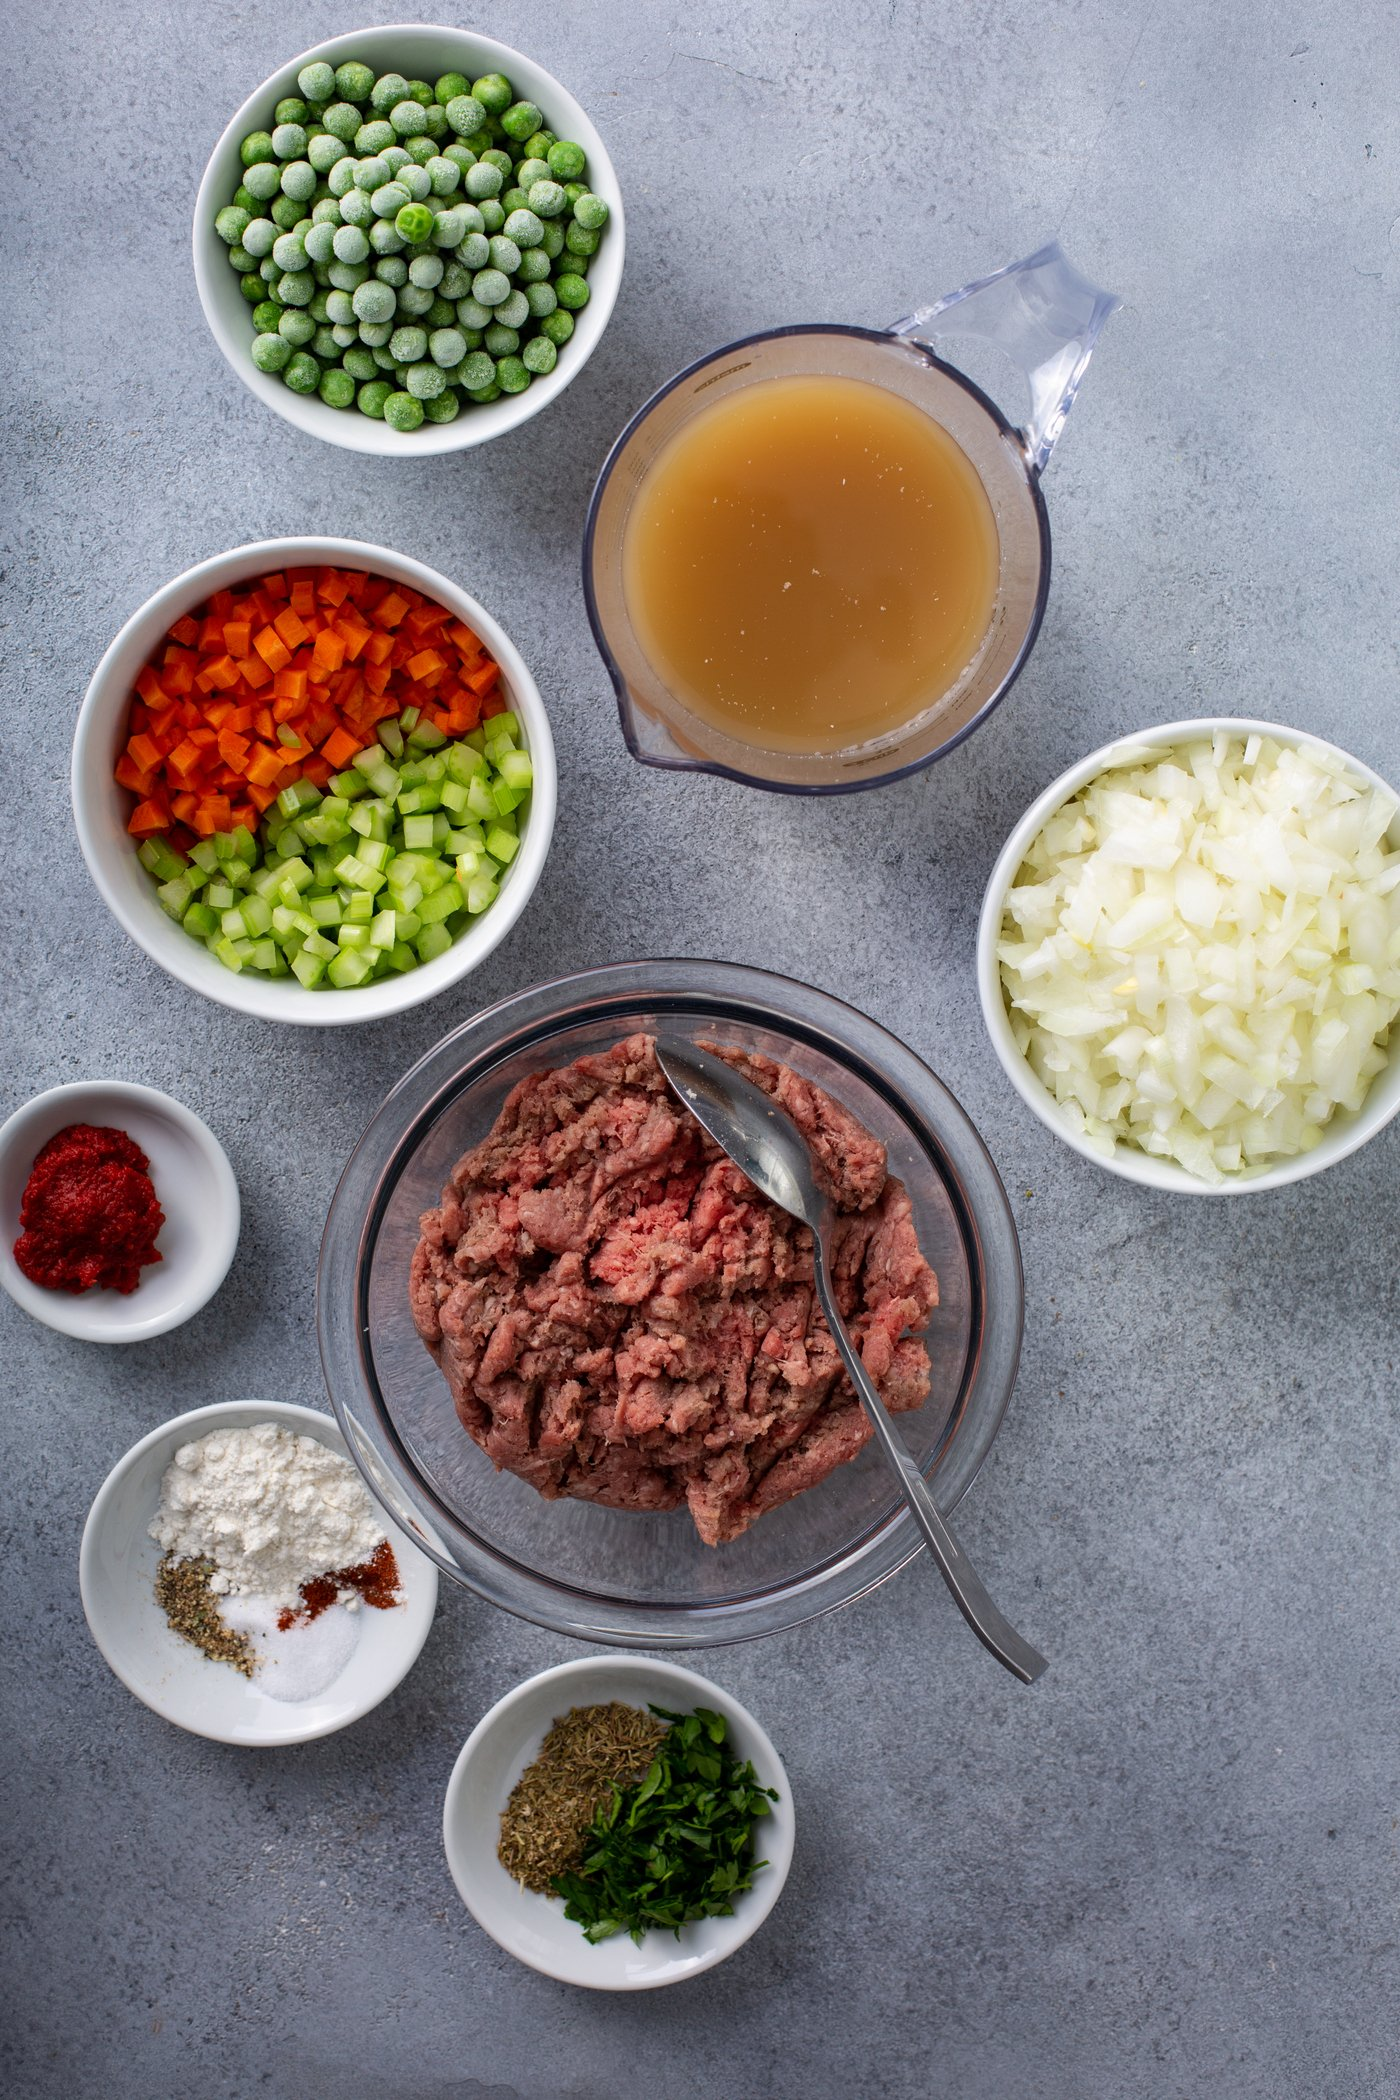 A table top with containers of ground beef, onions, chopped red and green peppers, spices, peas, and broth.